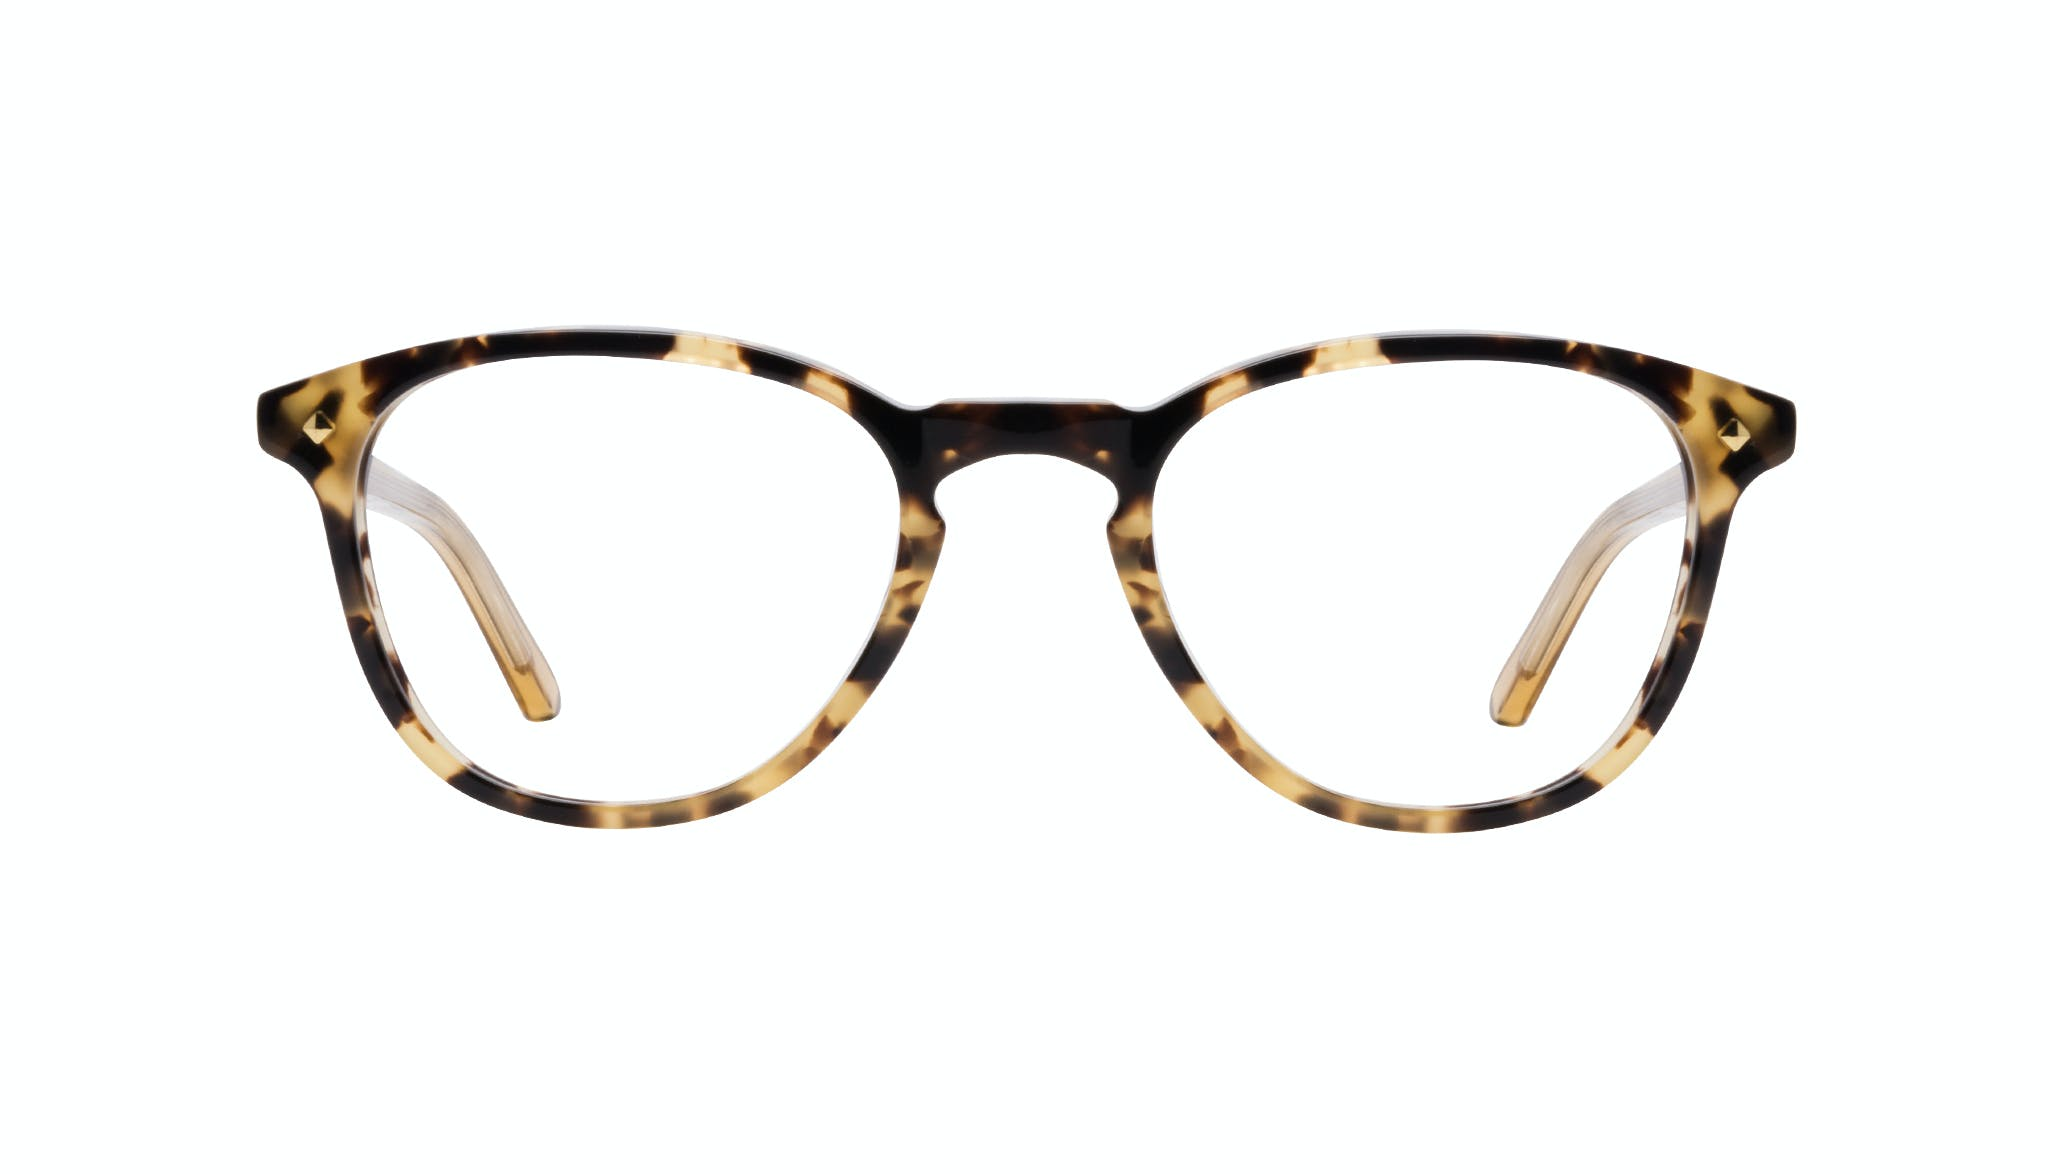 Affordable Fashion Glasses Round Eyeglasses Women Crush Bingal Front